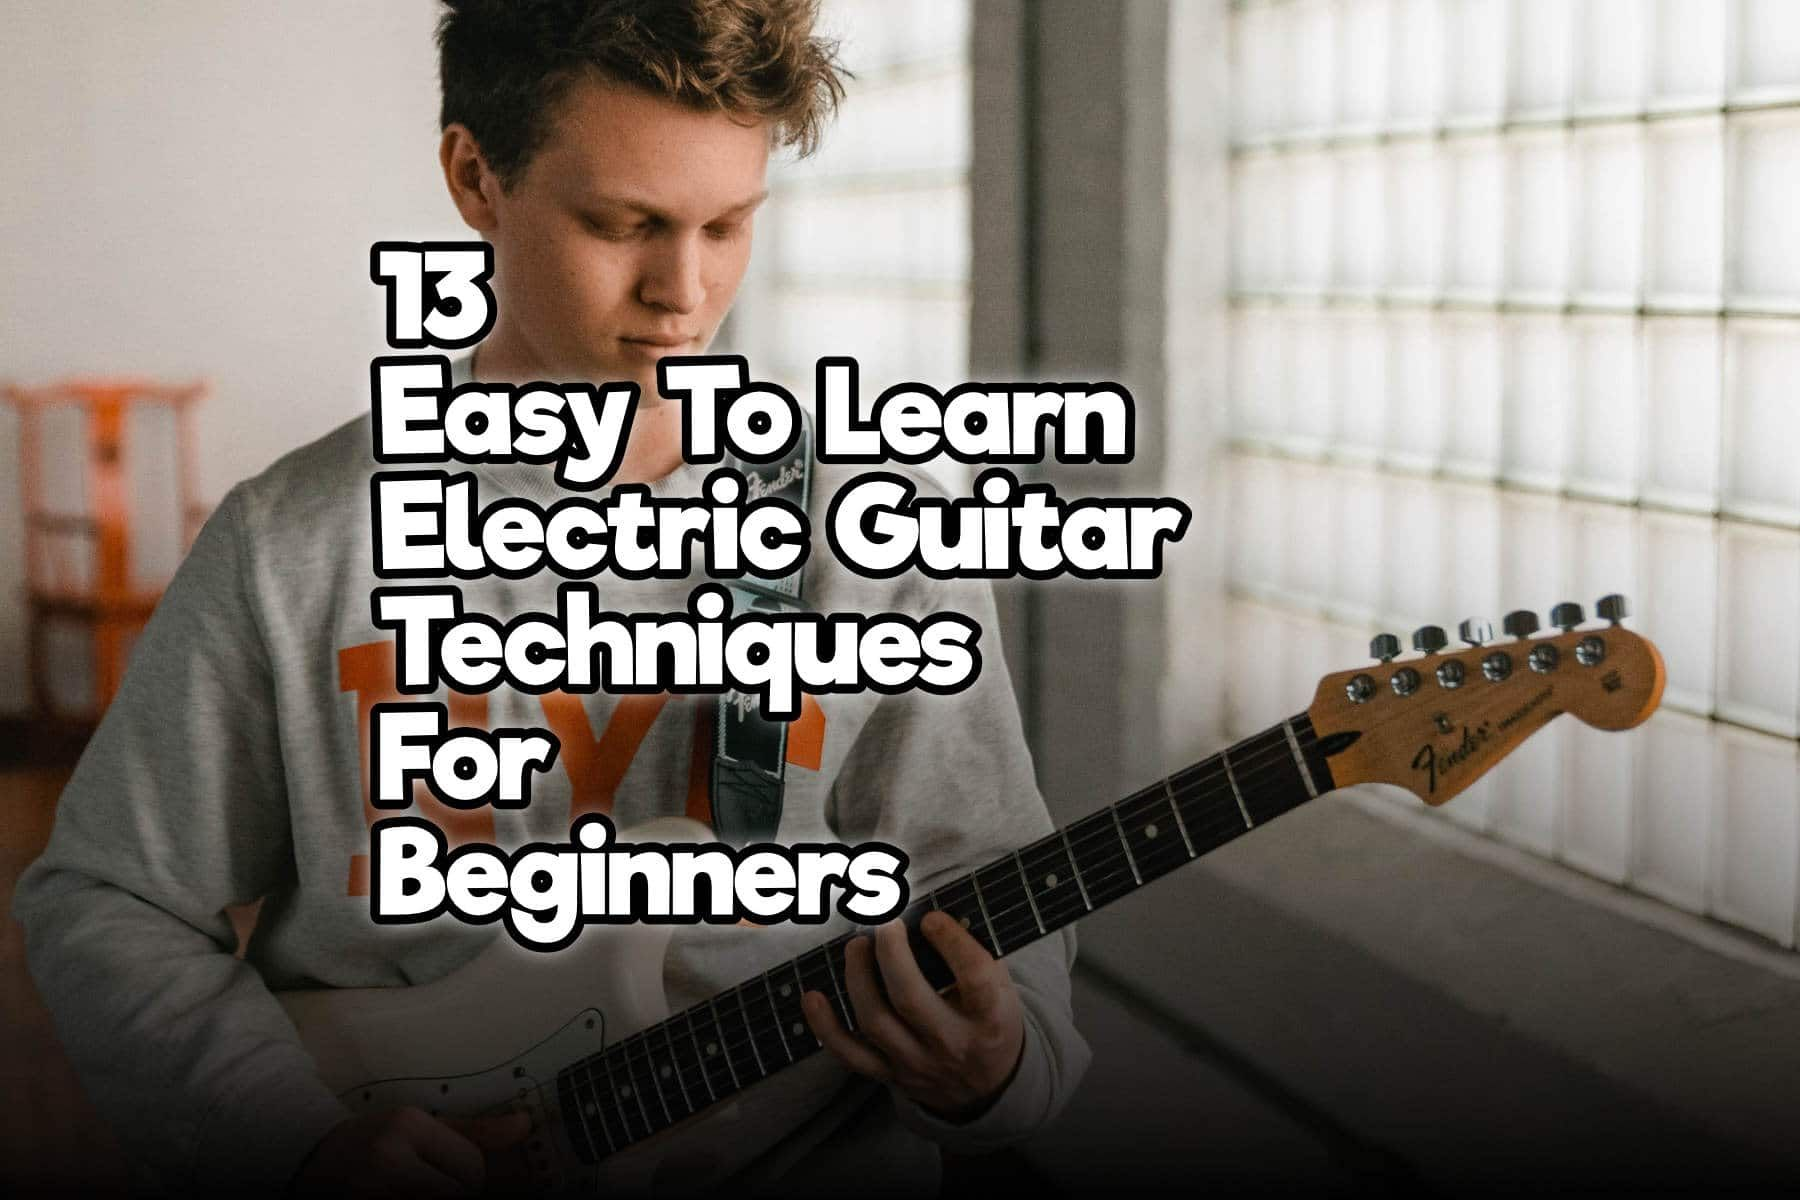 13 Easy To Learn Electric Guitar Techniques For Beginners – Rock Guitar Universe #electricguitars